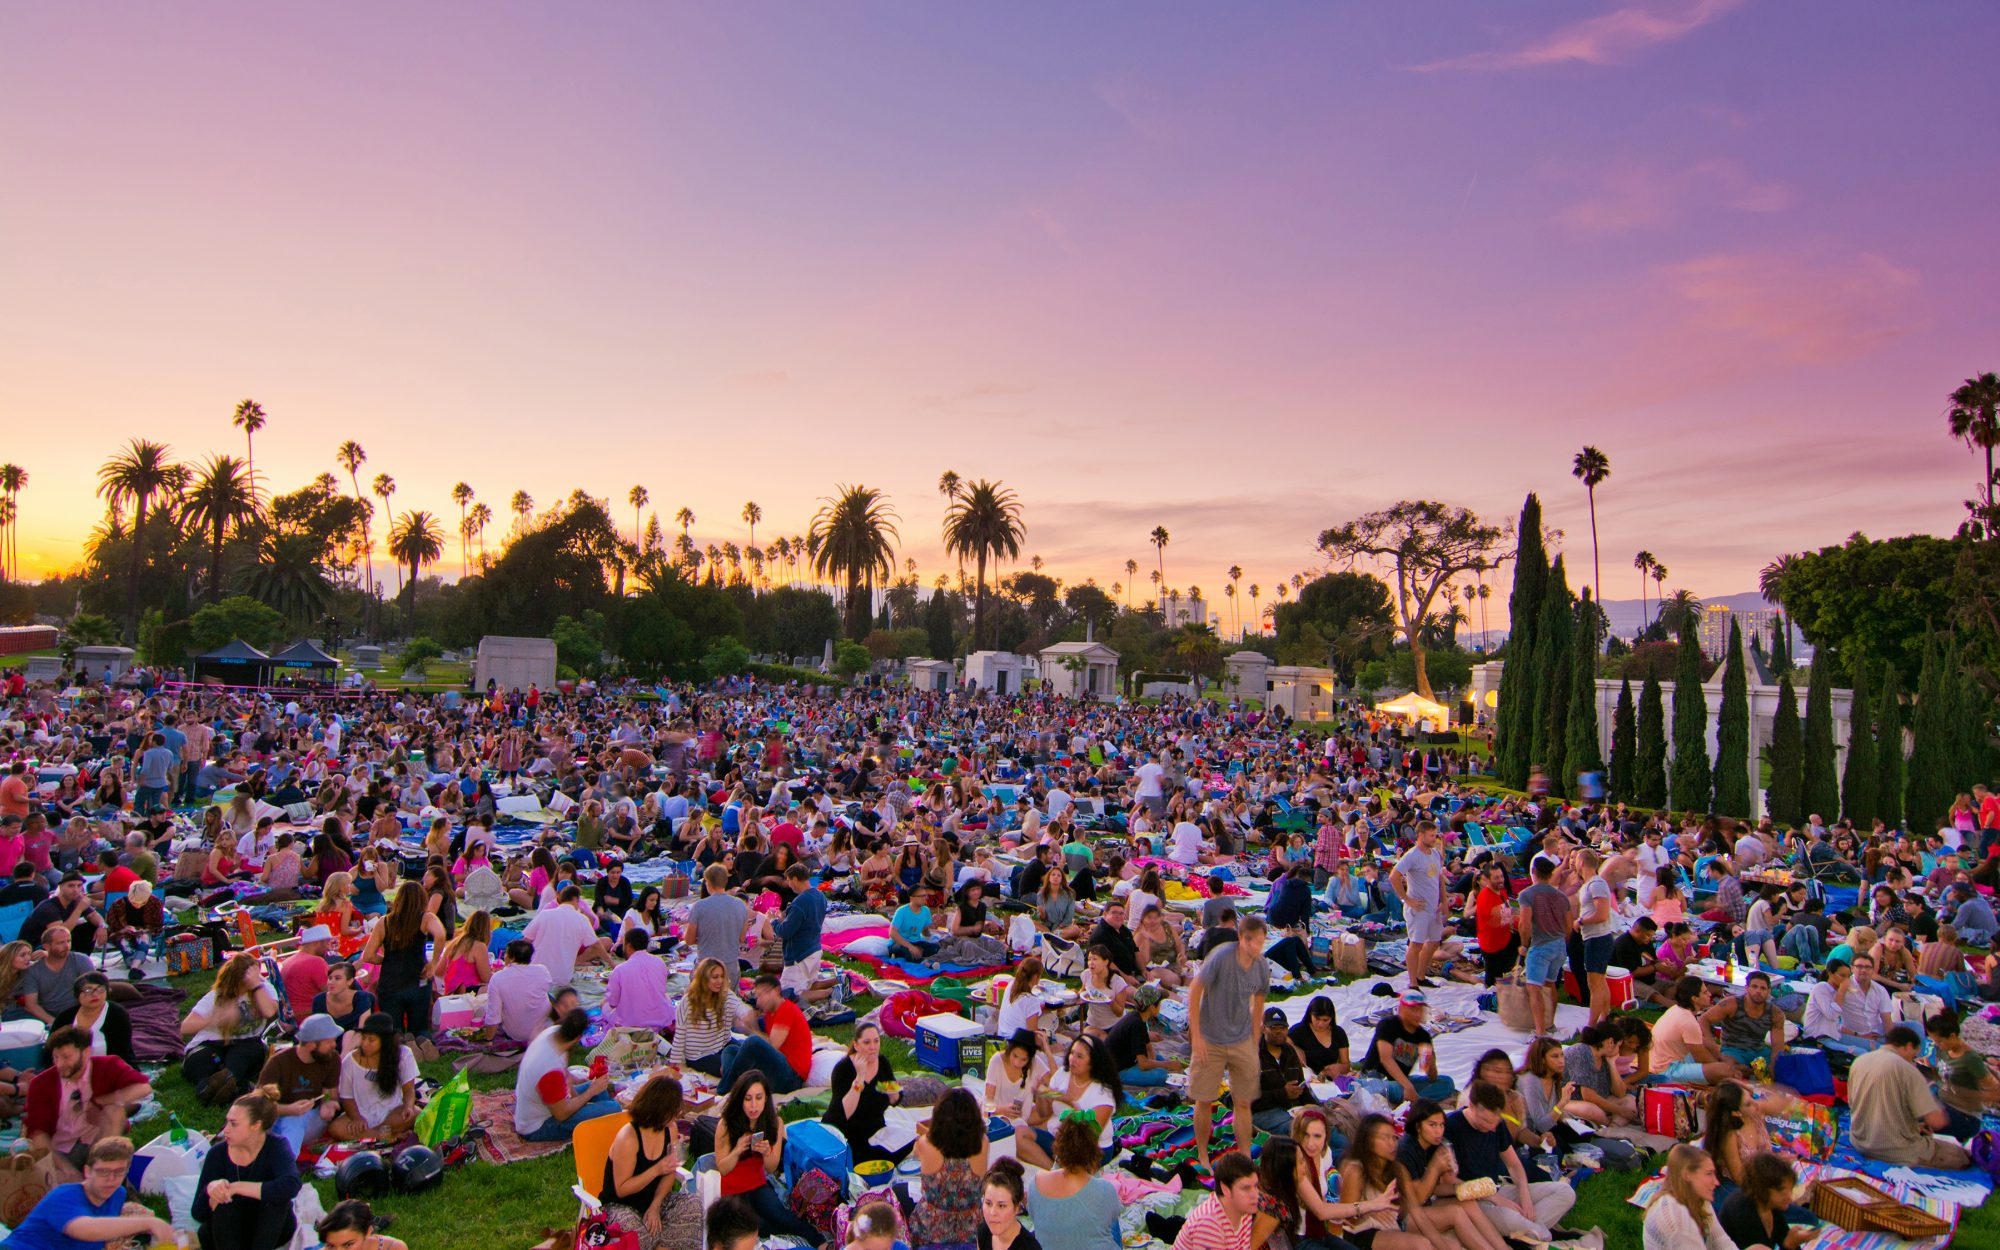 The Most Popular Summer Activities in Los Angeles